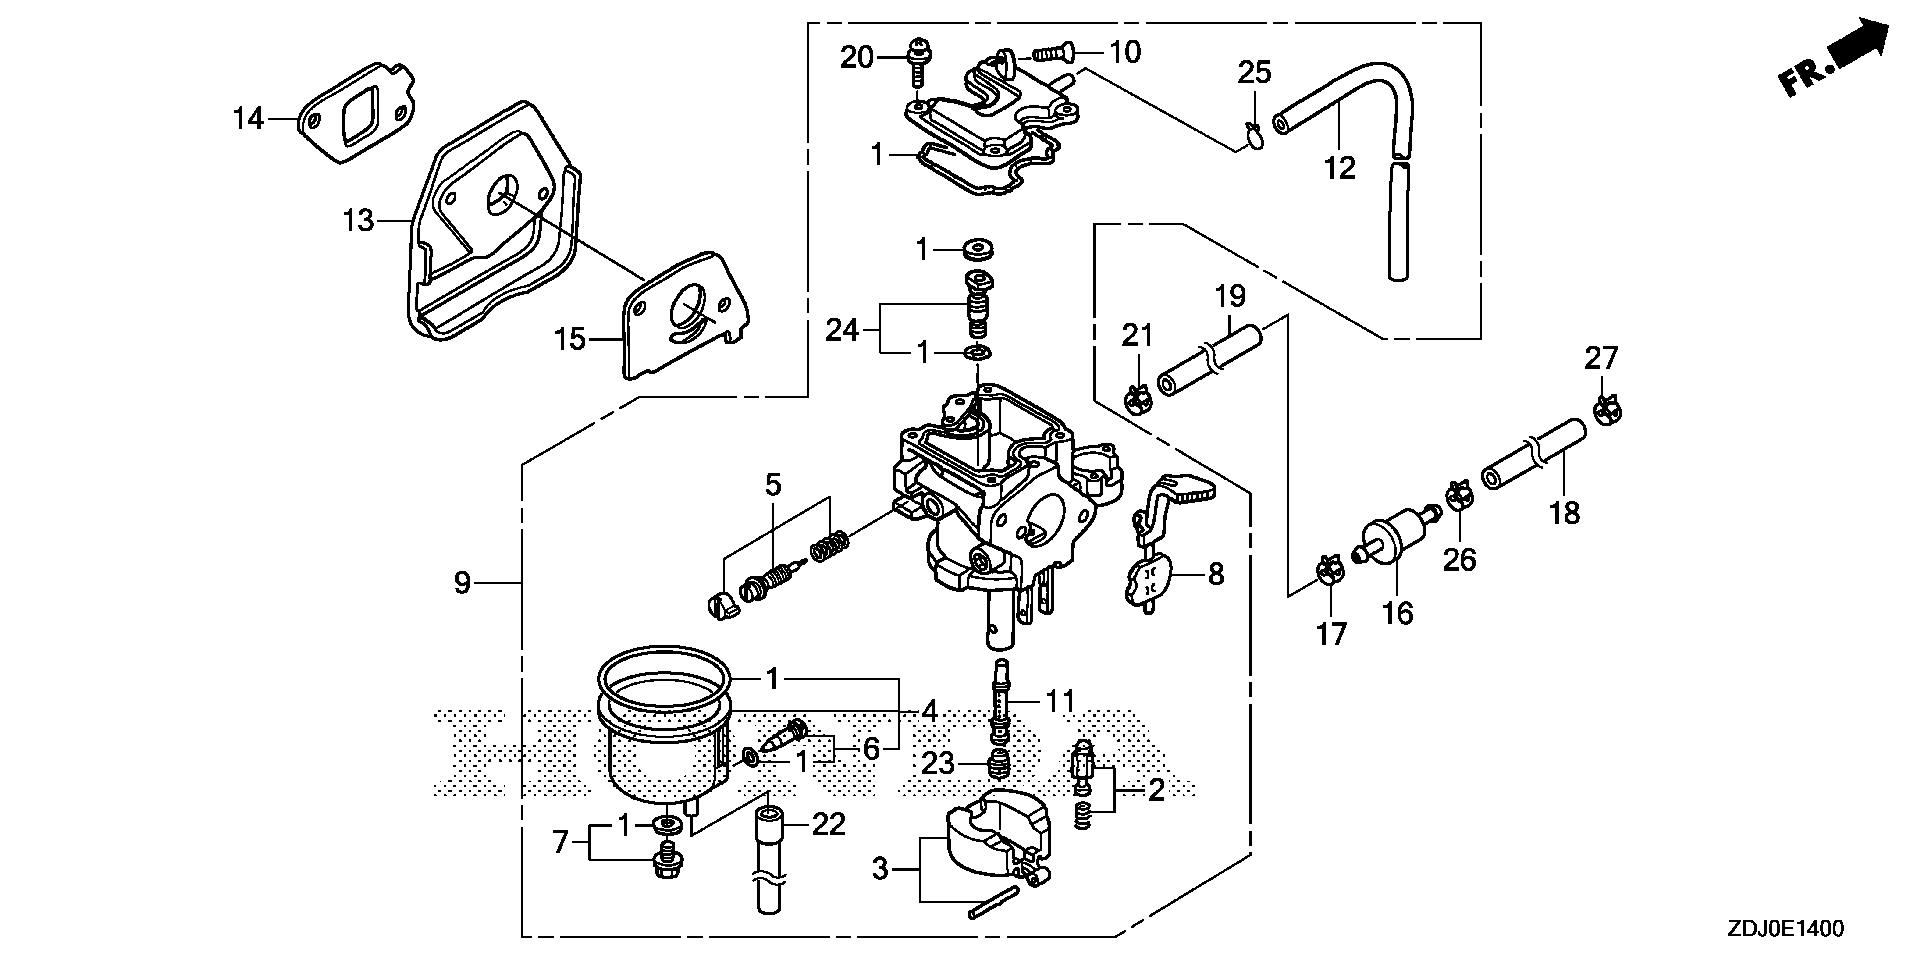 CARBURETOR (1) (RAMMER   FLOAT)